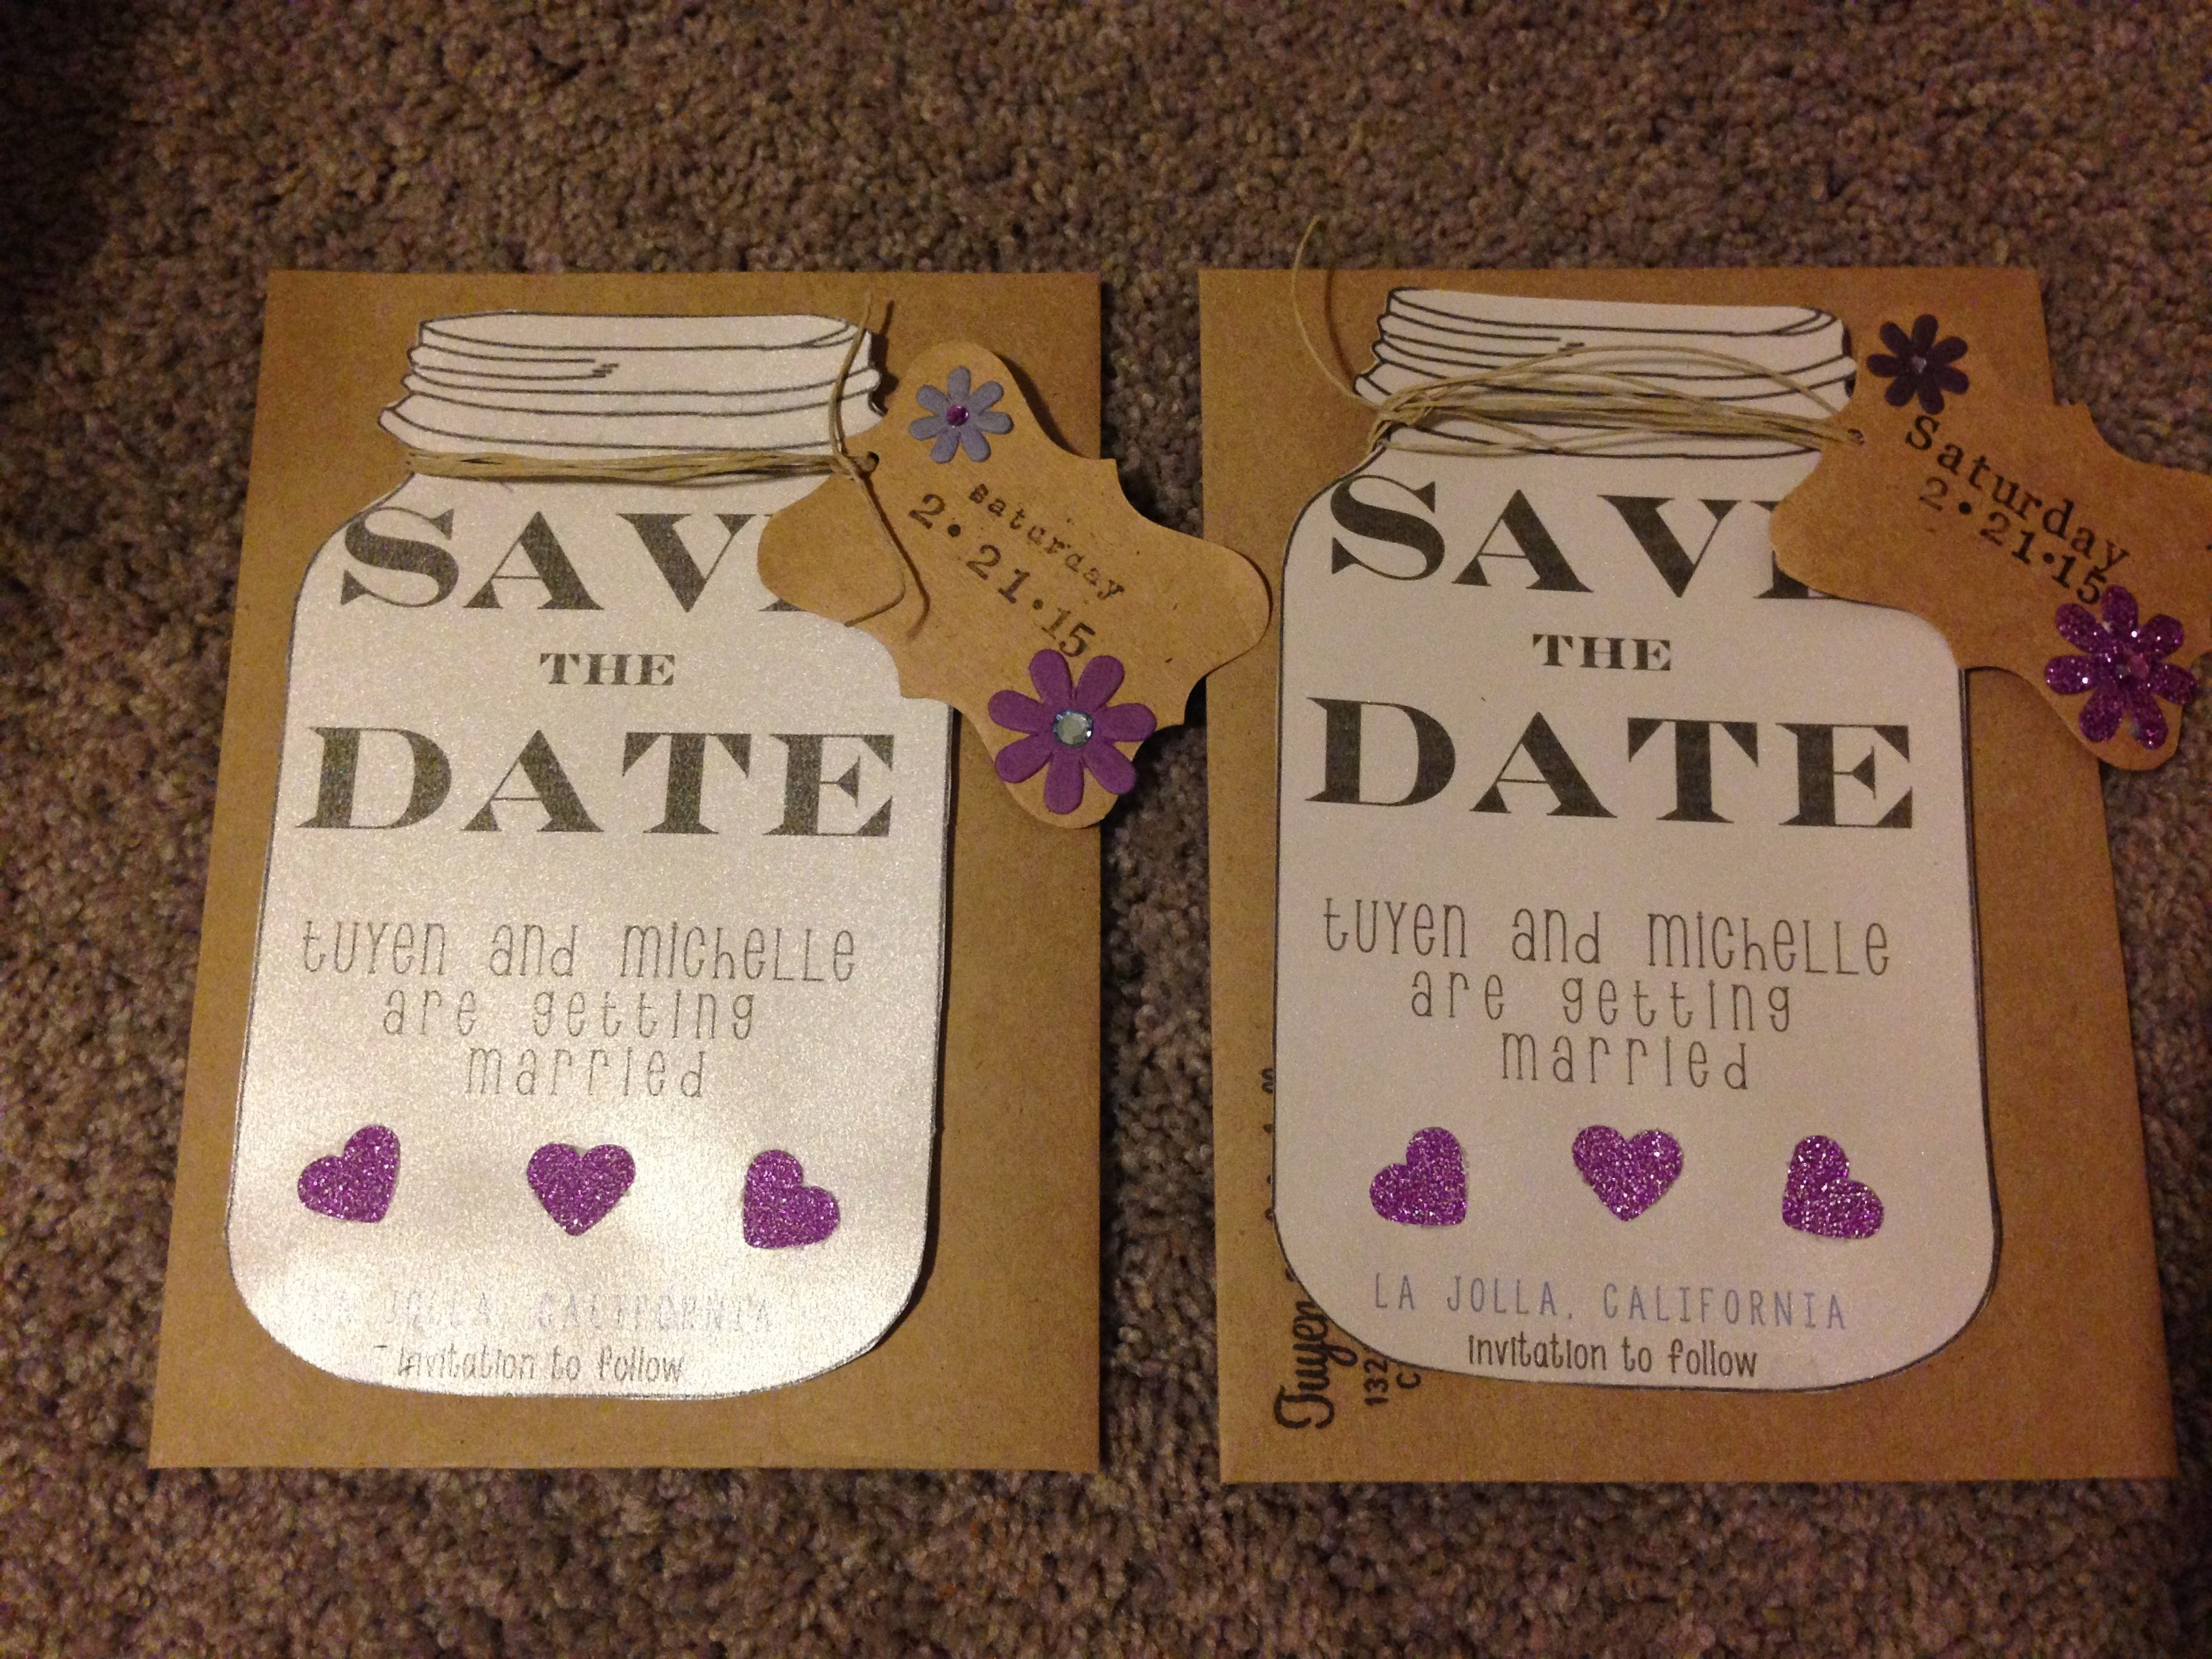 10 Amazing Save The Date Ideas Diy diy save the dates 1 2021